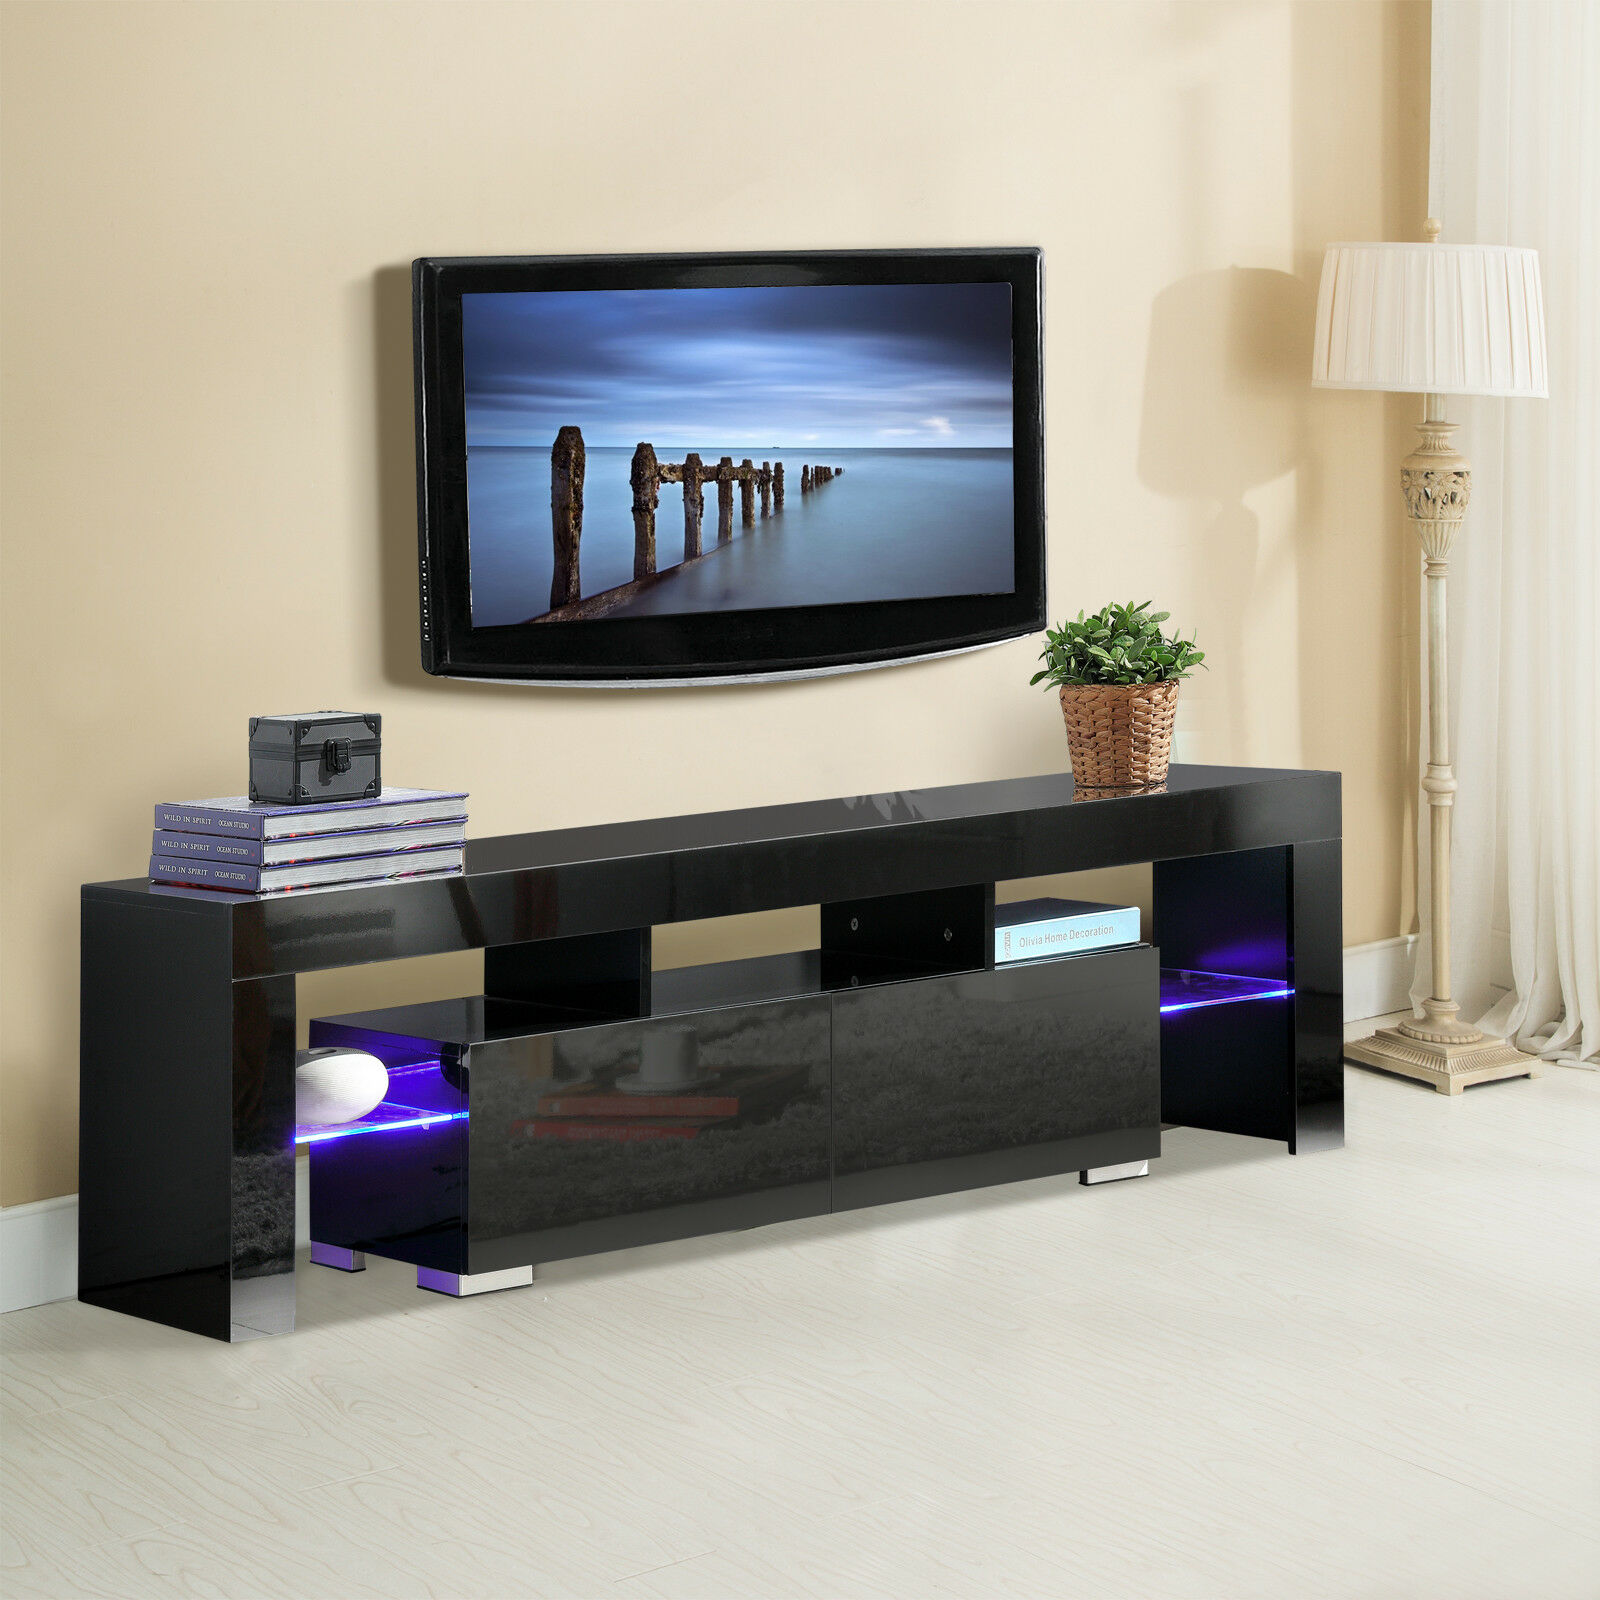 High Gloss Black Tv Stand Unit Cabinet W Led Shelves 2 Drawers Console Furniture